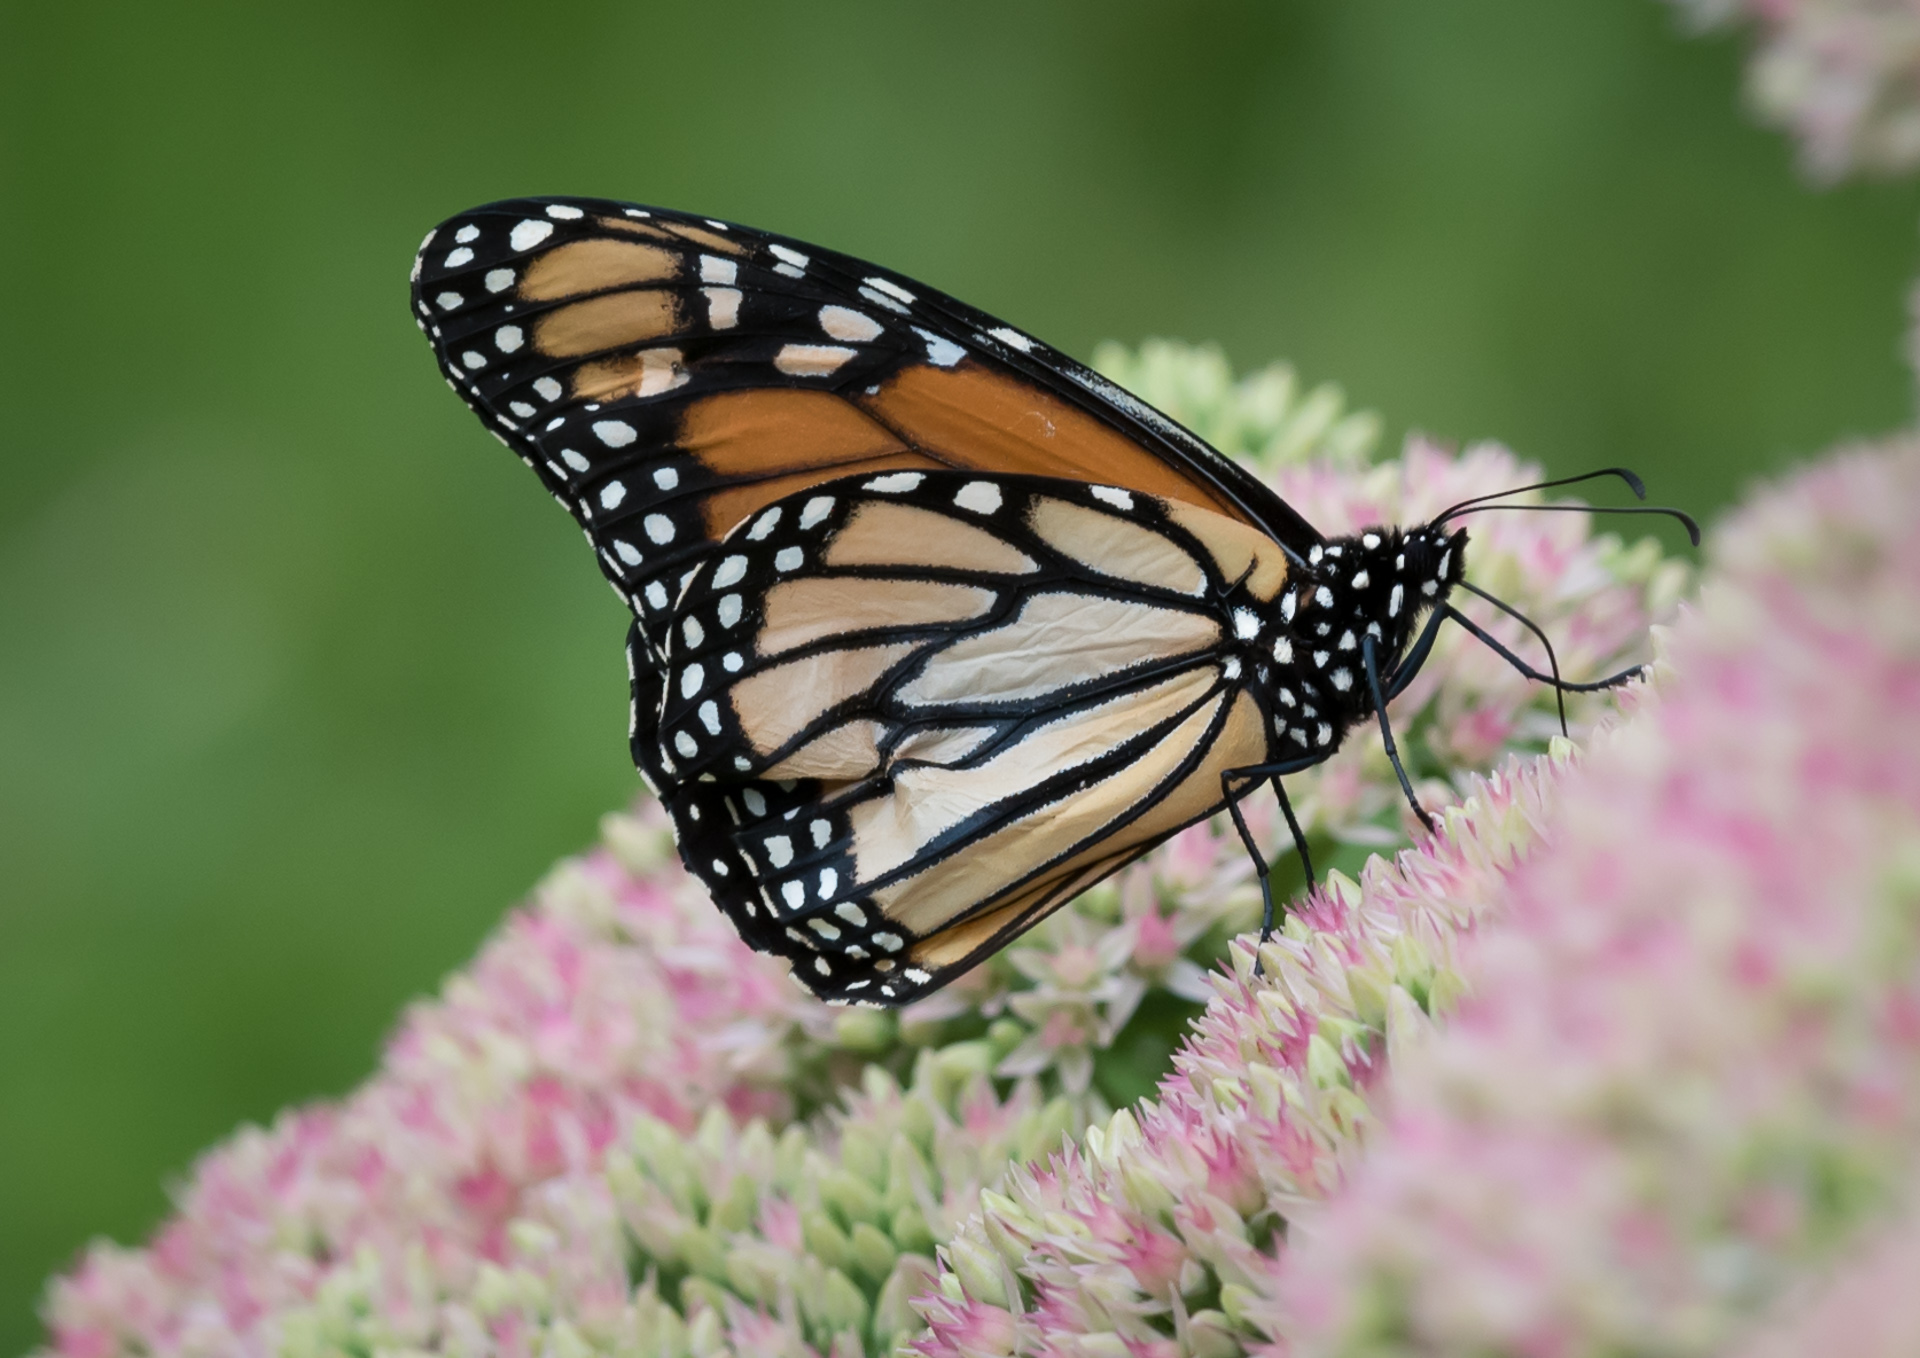 Monarch on Cedum - Digital (Shallow Depth of Field) - Name Withheld Per Request